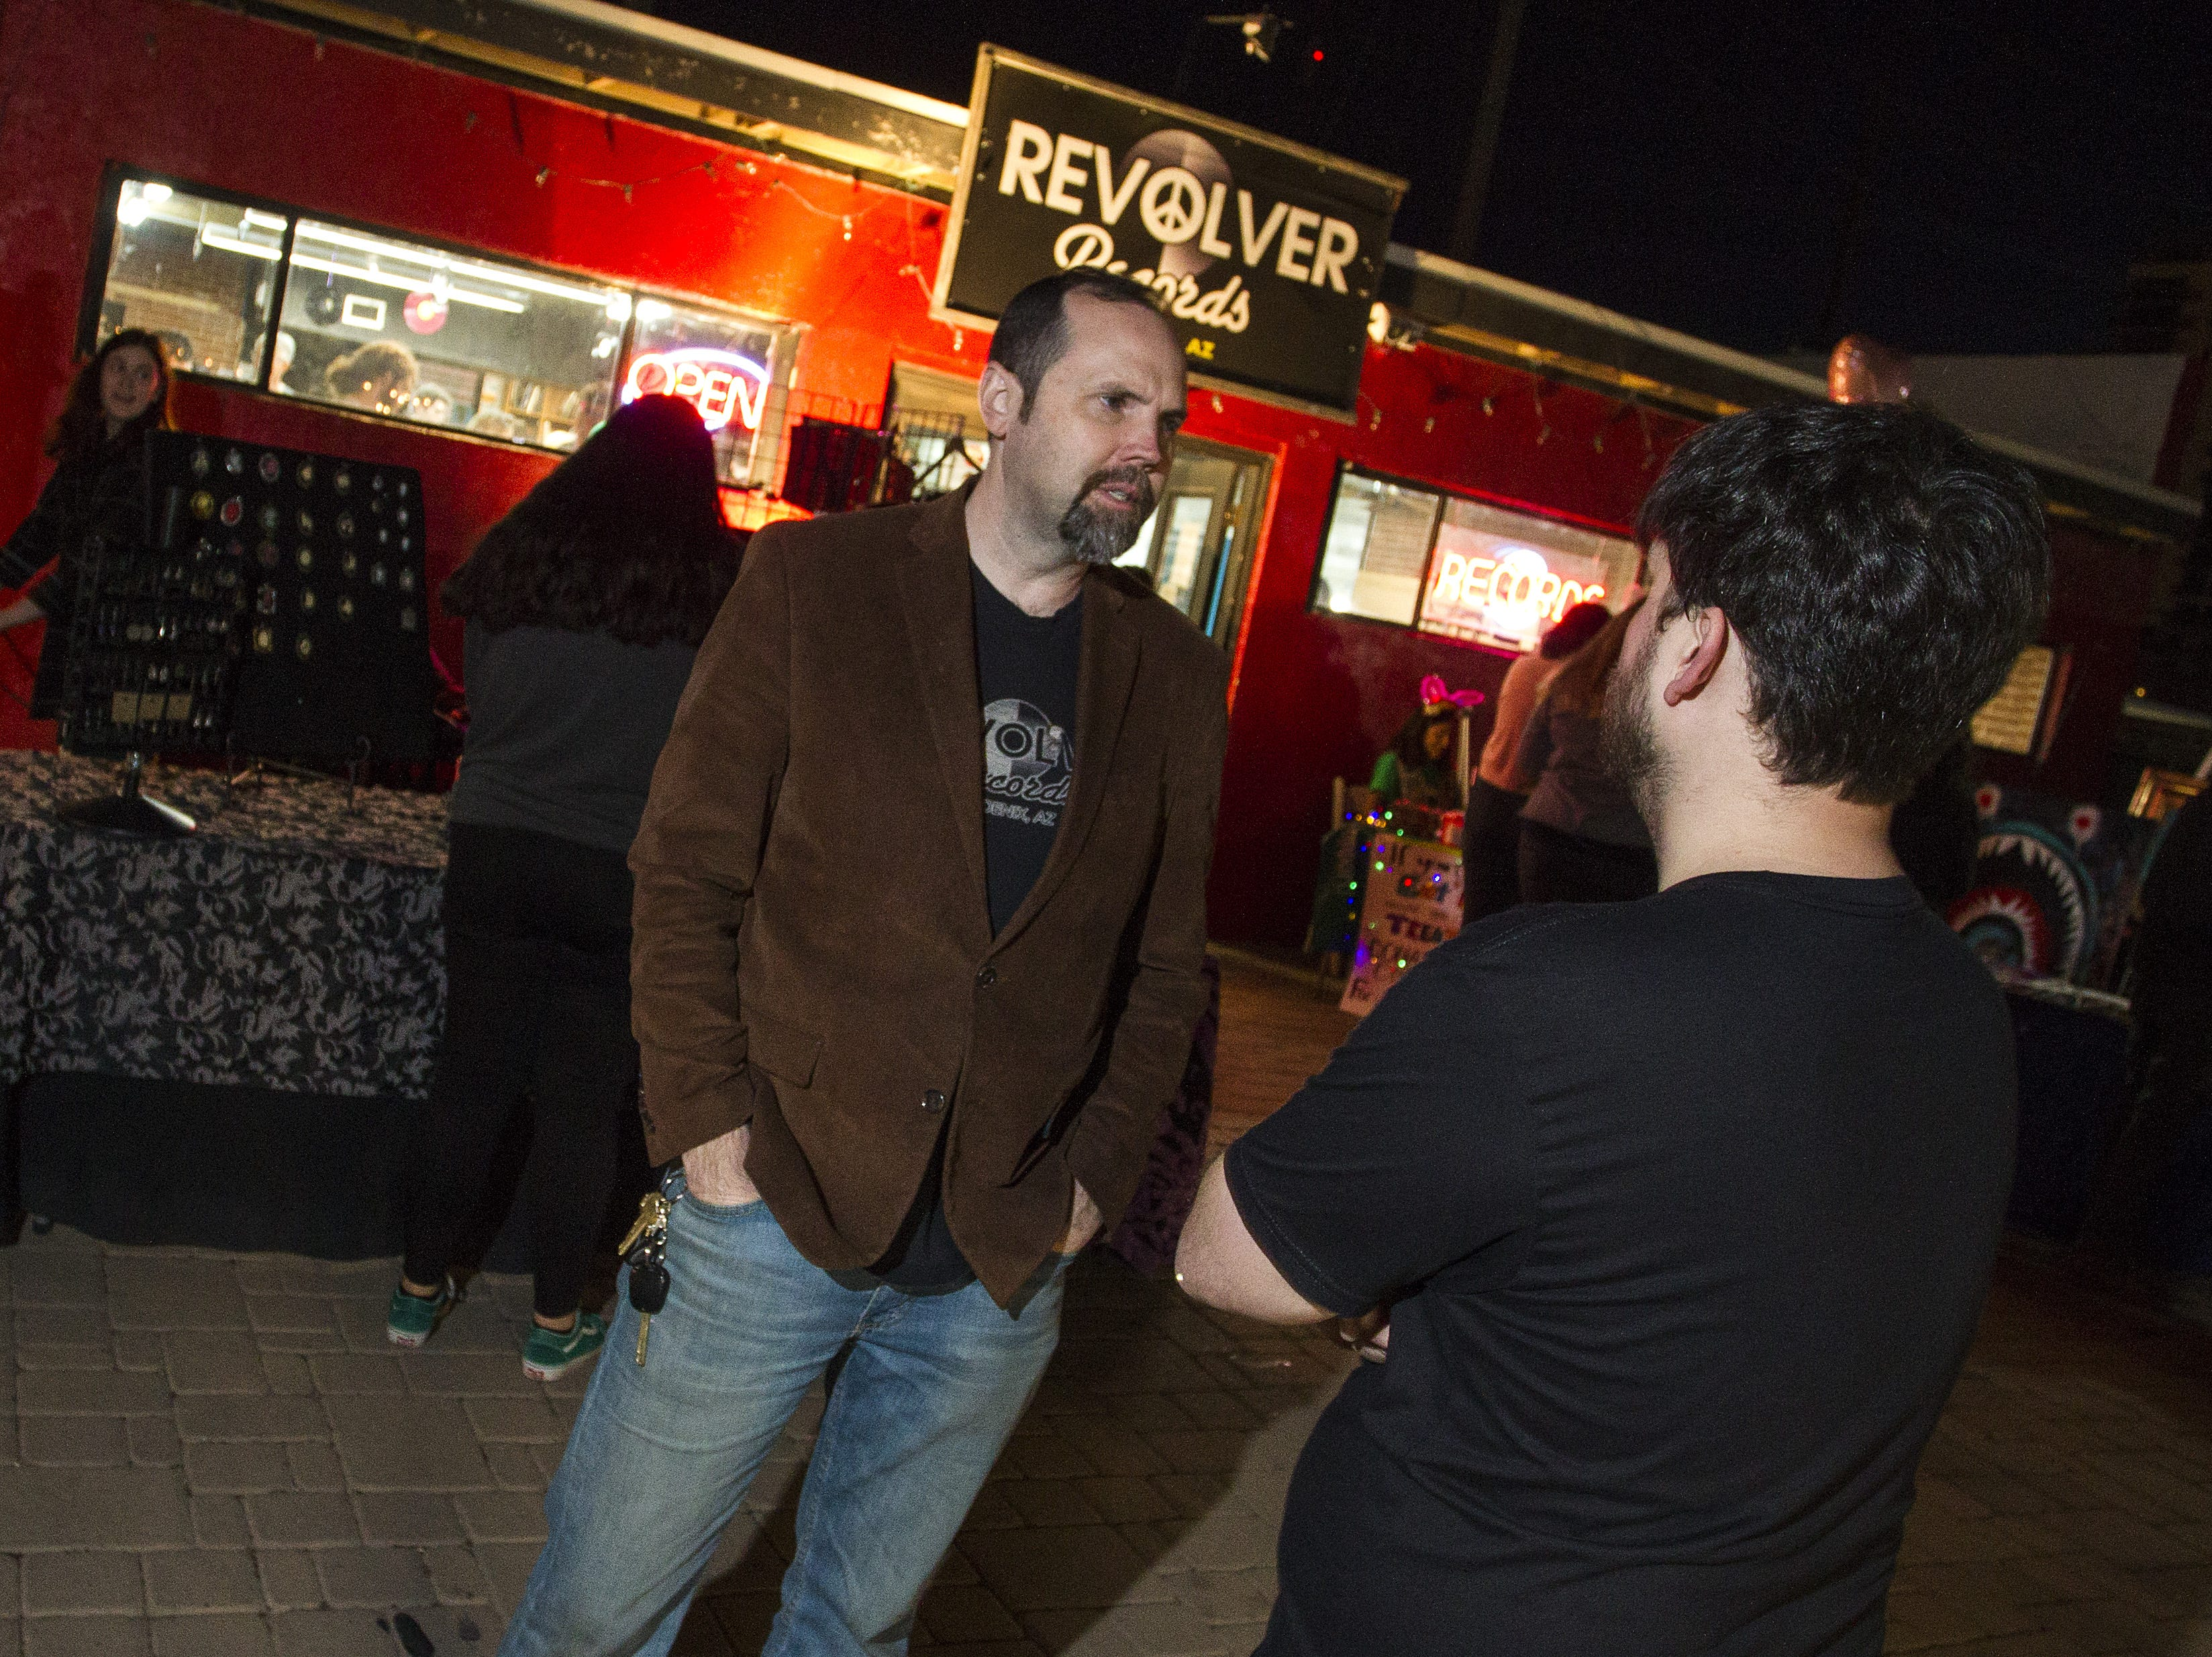 Revolver Records' owner TJ Jordan talks with former employee Jared Cox outside of his record store in downtown Phoenix, Feb. 1, 2019.